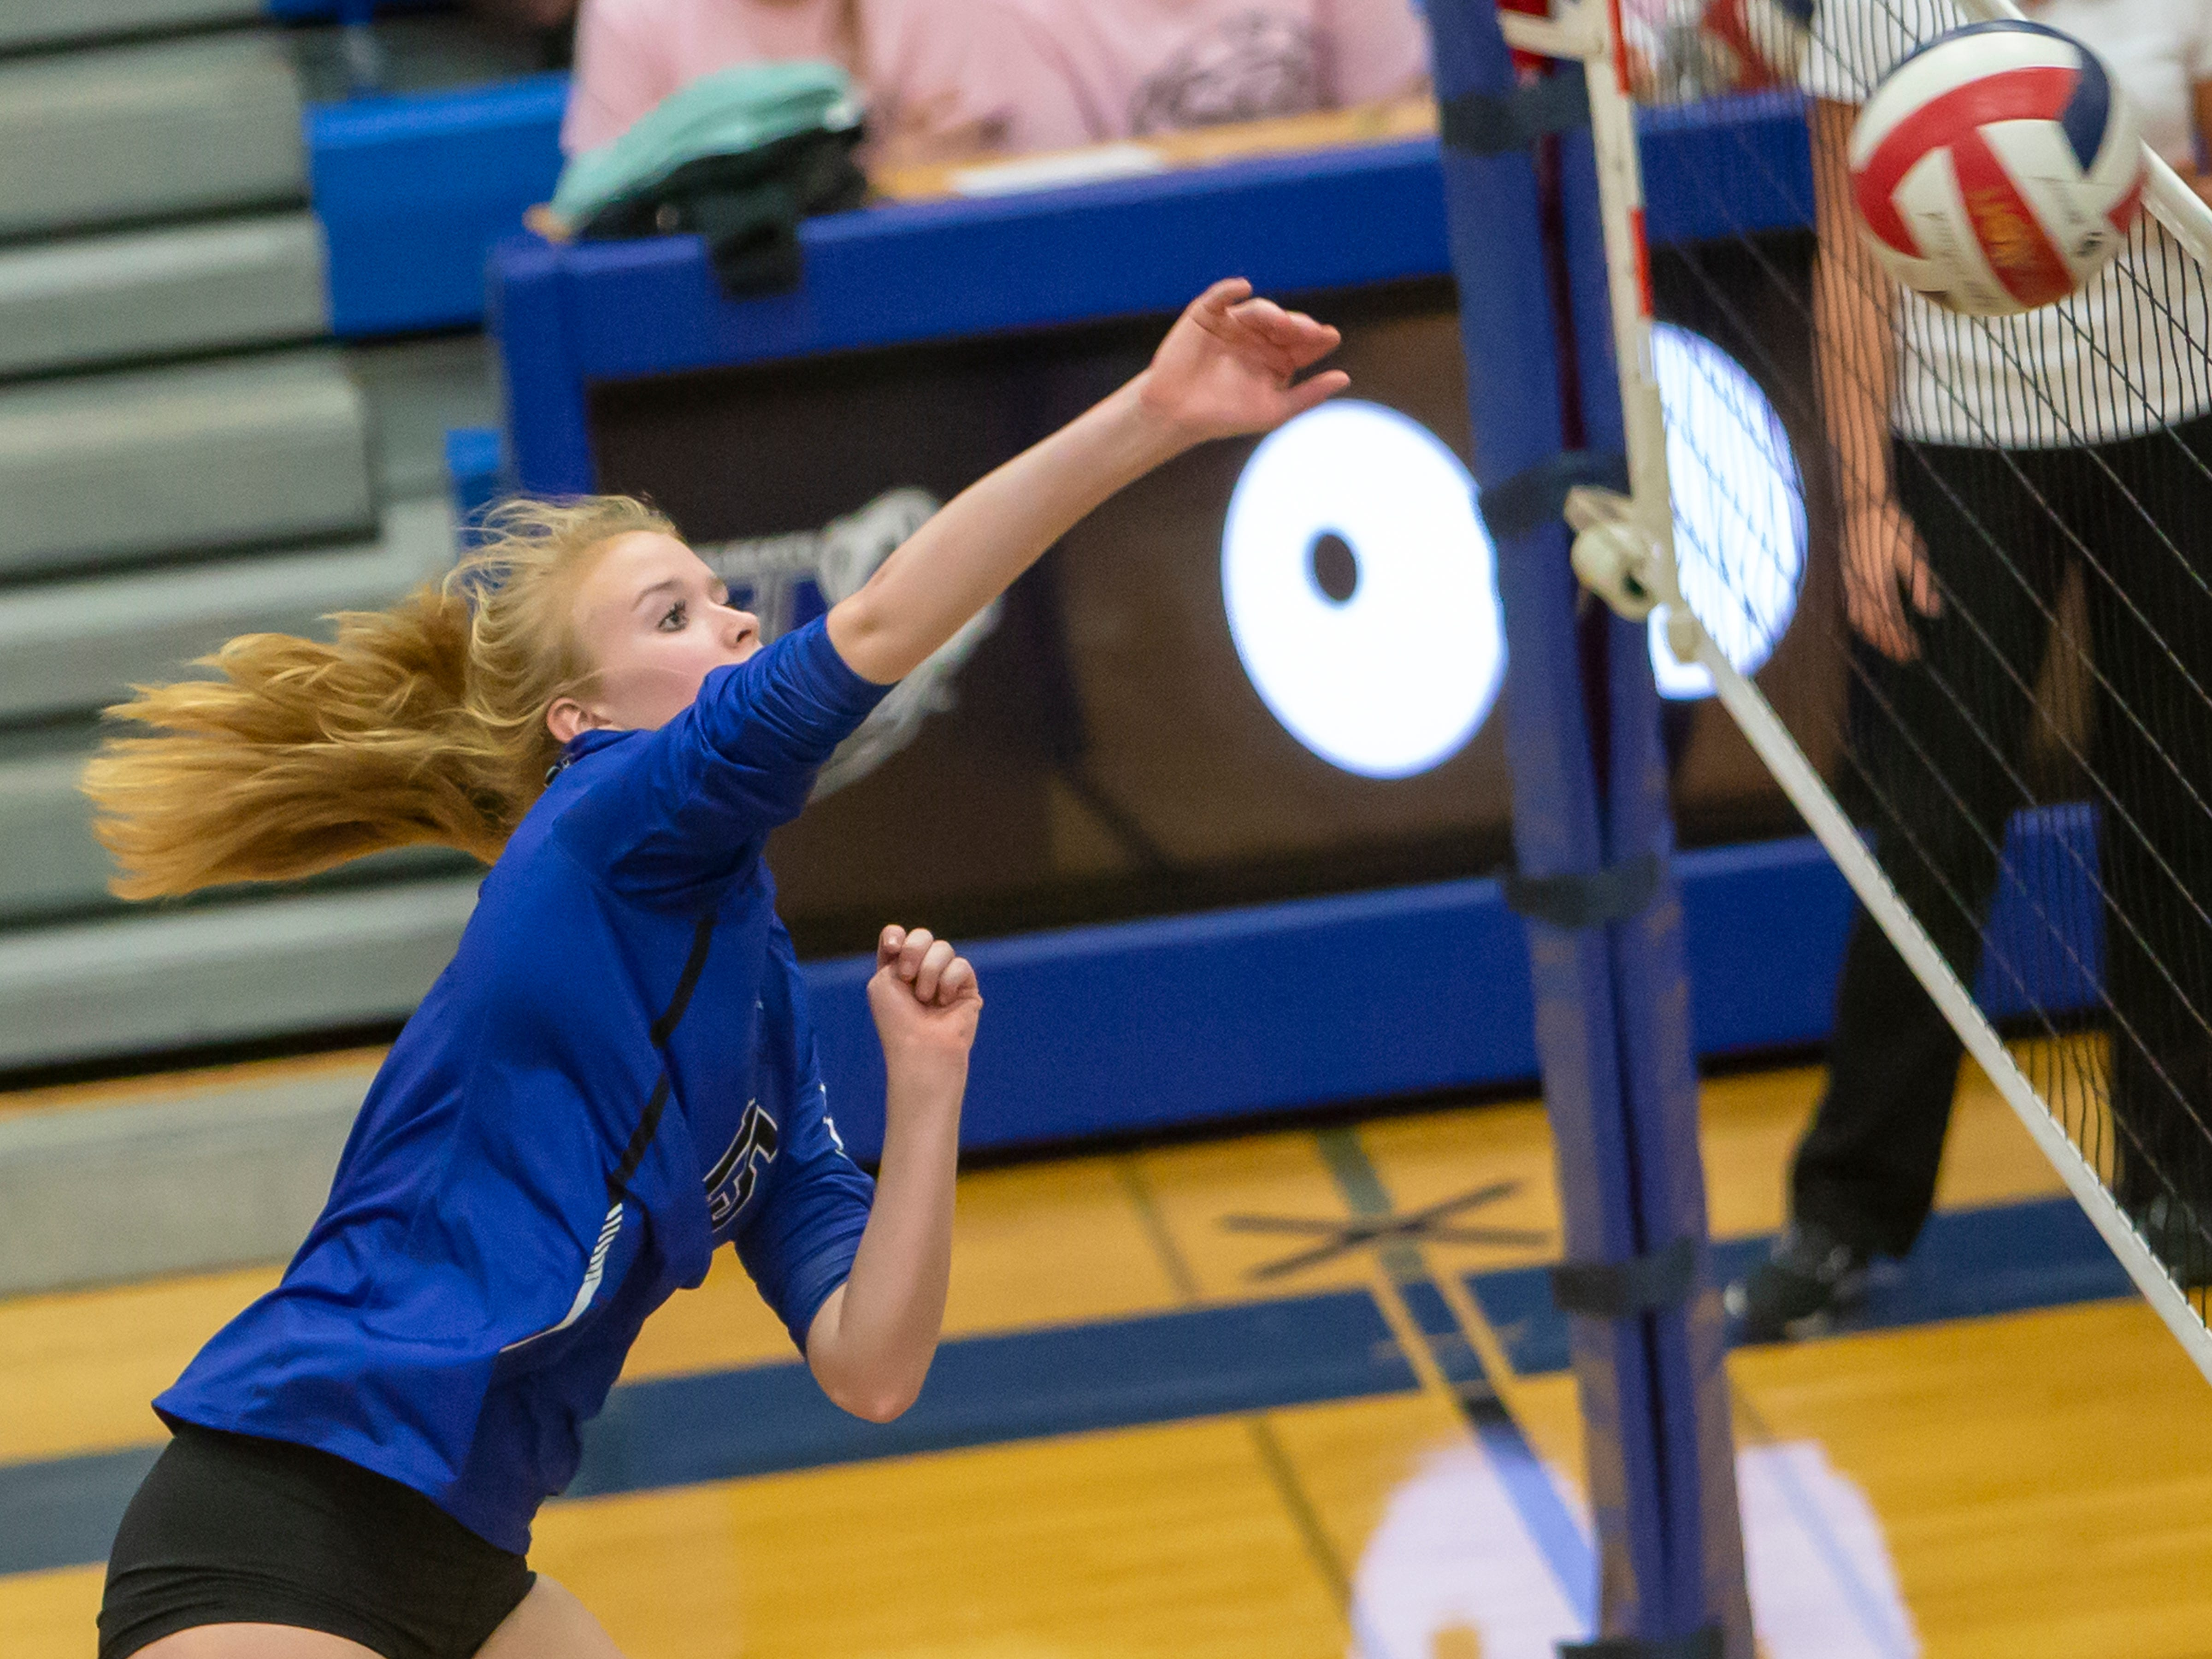 Oshkosh West's Randi Wellhoefer hits a return to Hortonville playing at Oshkosh West High School on Thursday, October 11, 2018.